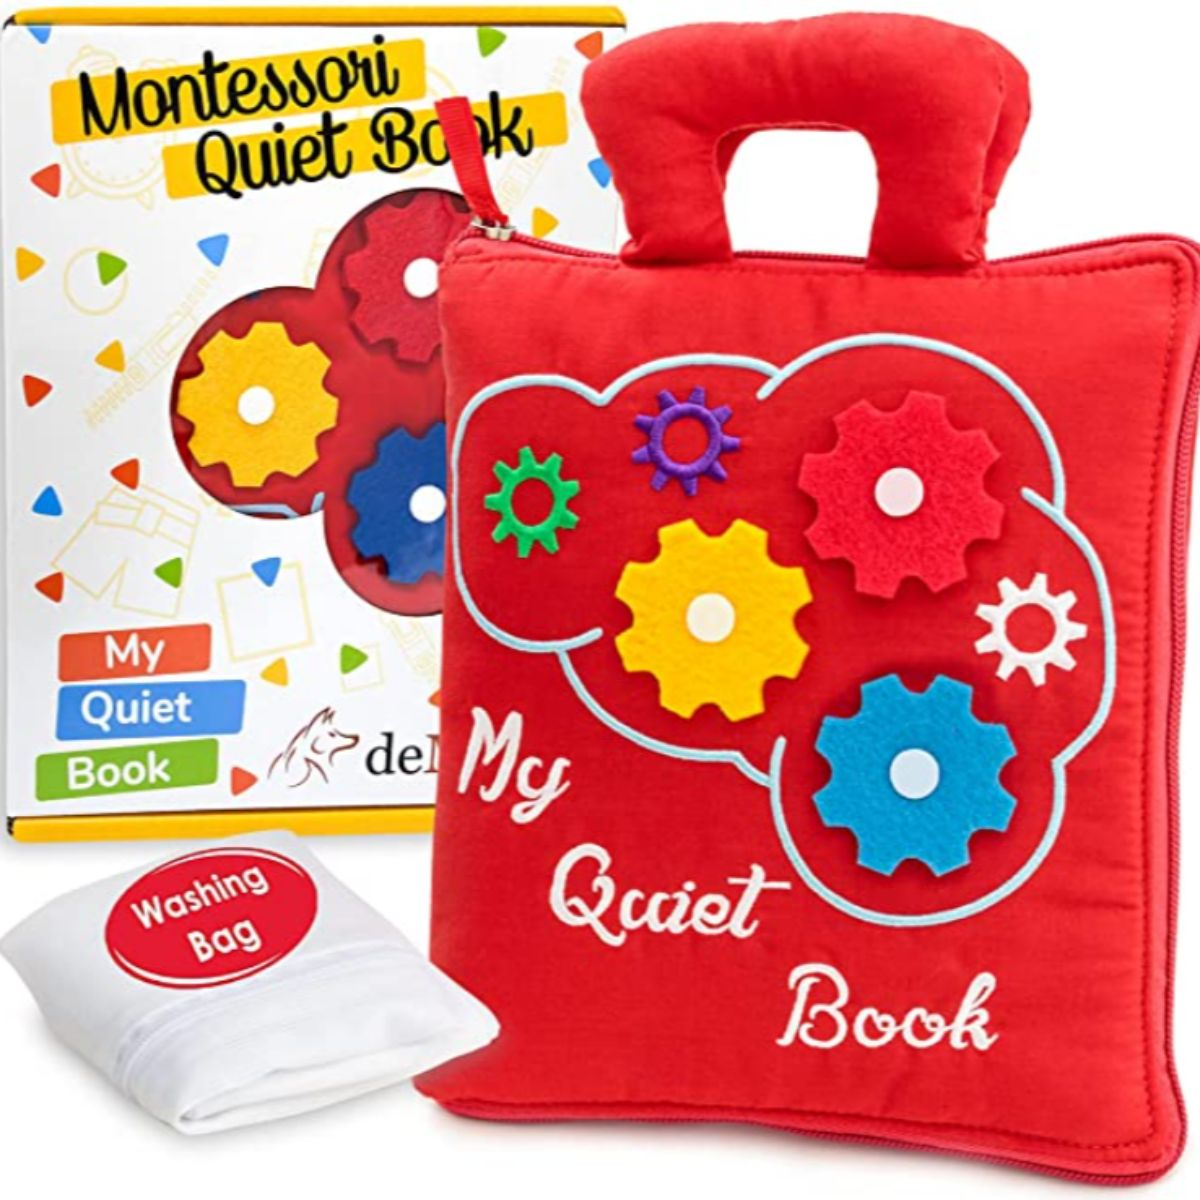 a montessori quiet book with a washing bag and material cogs on the front